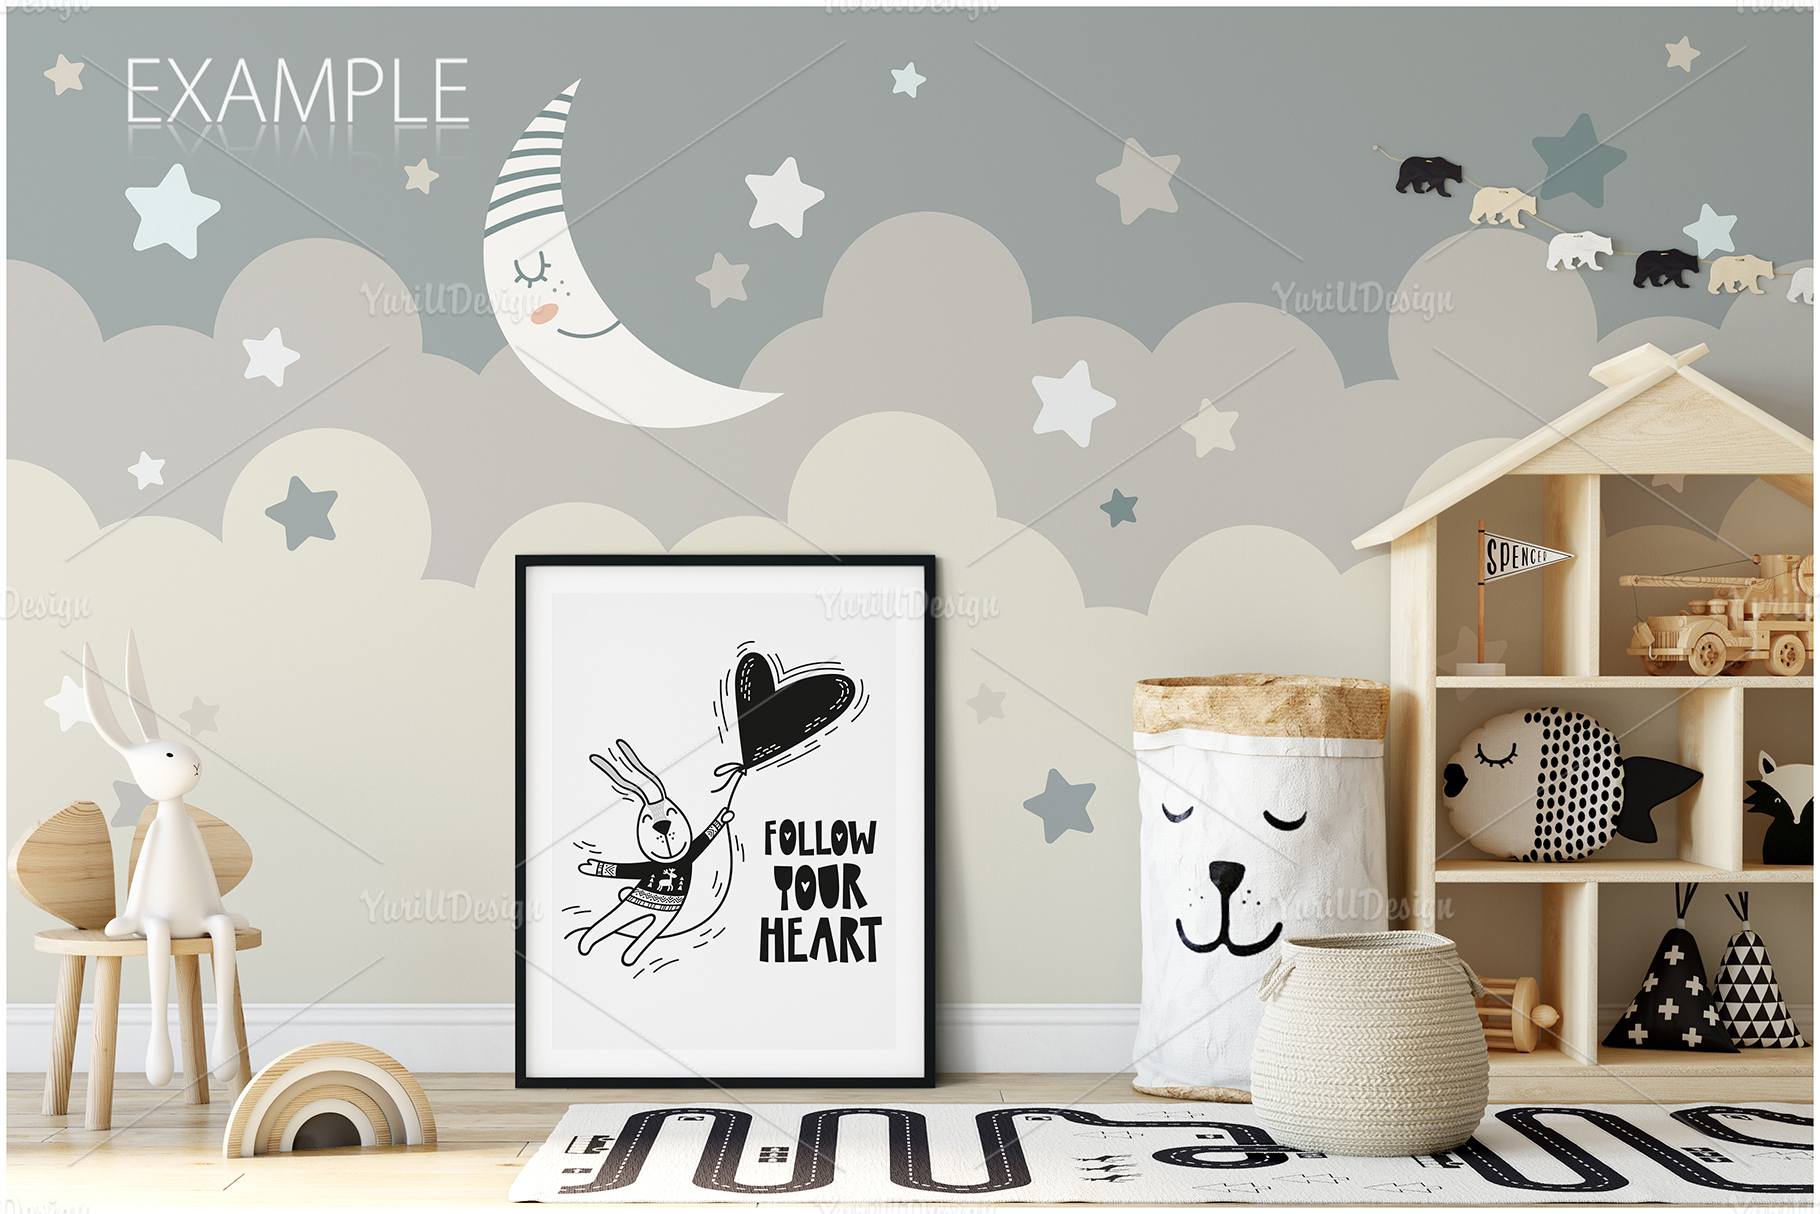 Kids Frames & Wall Mockup Bundle - 5 example image 11